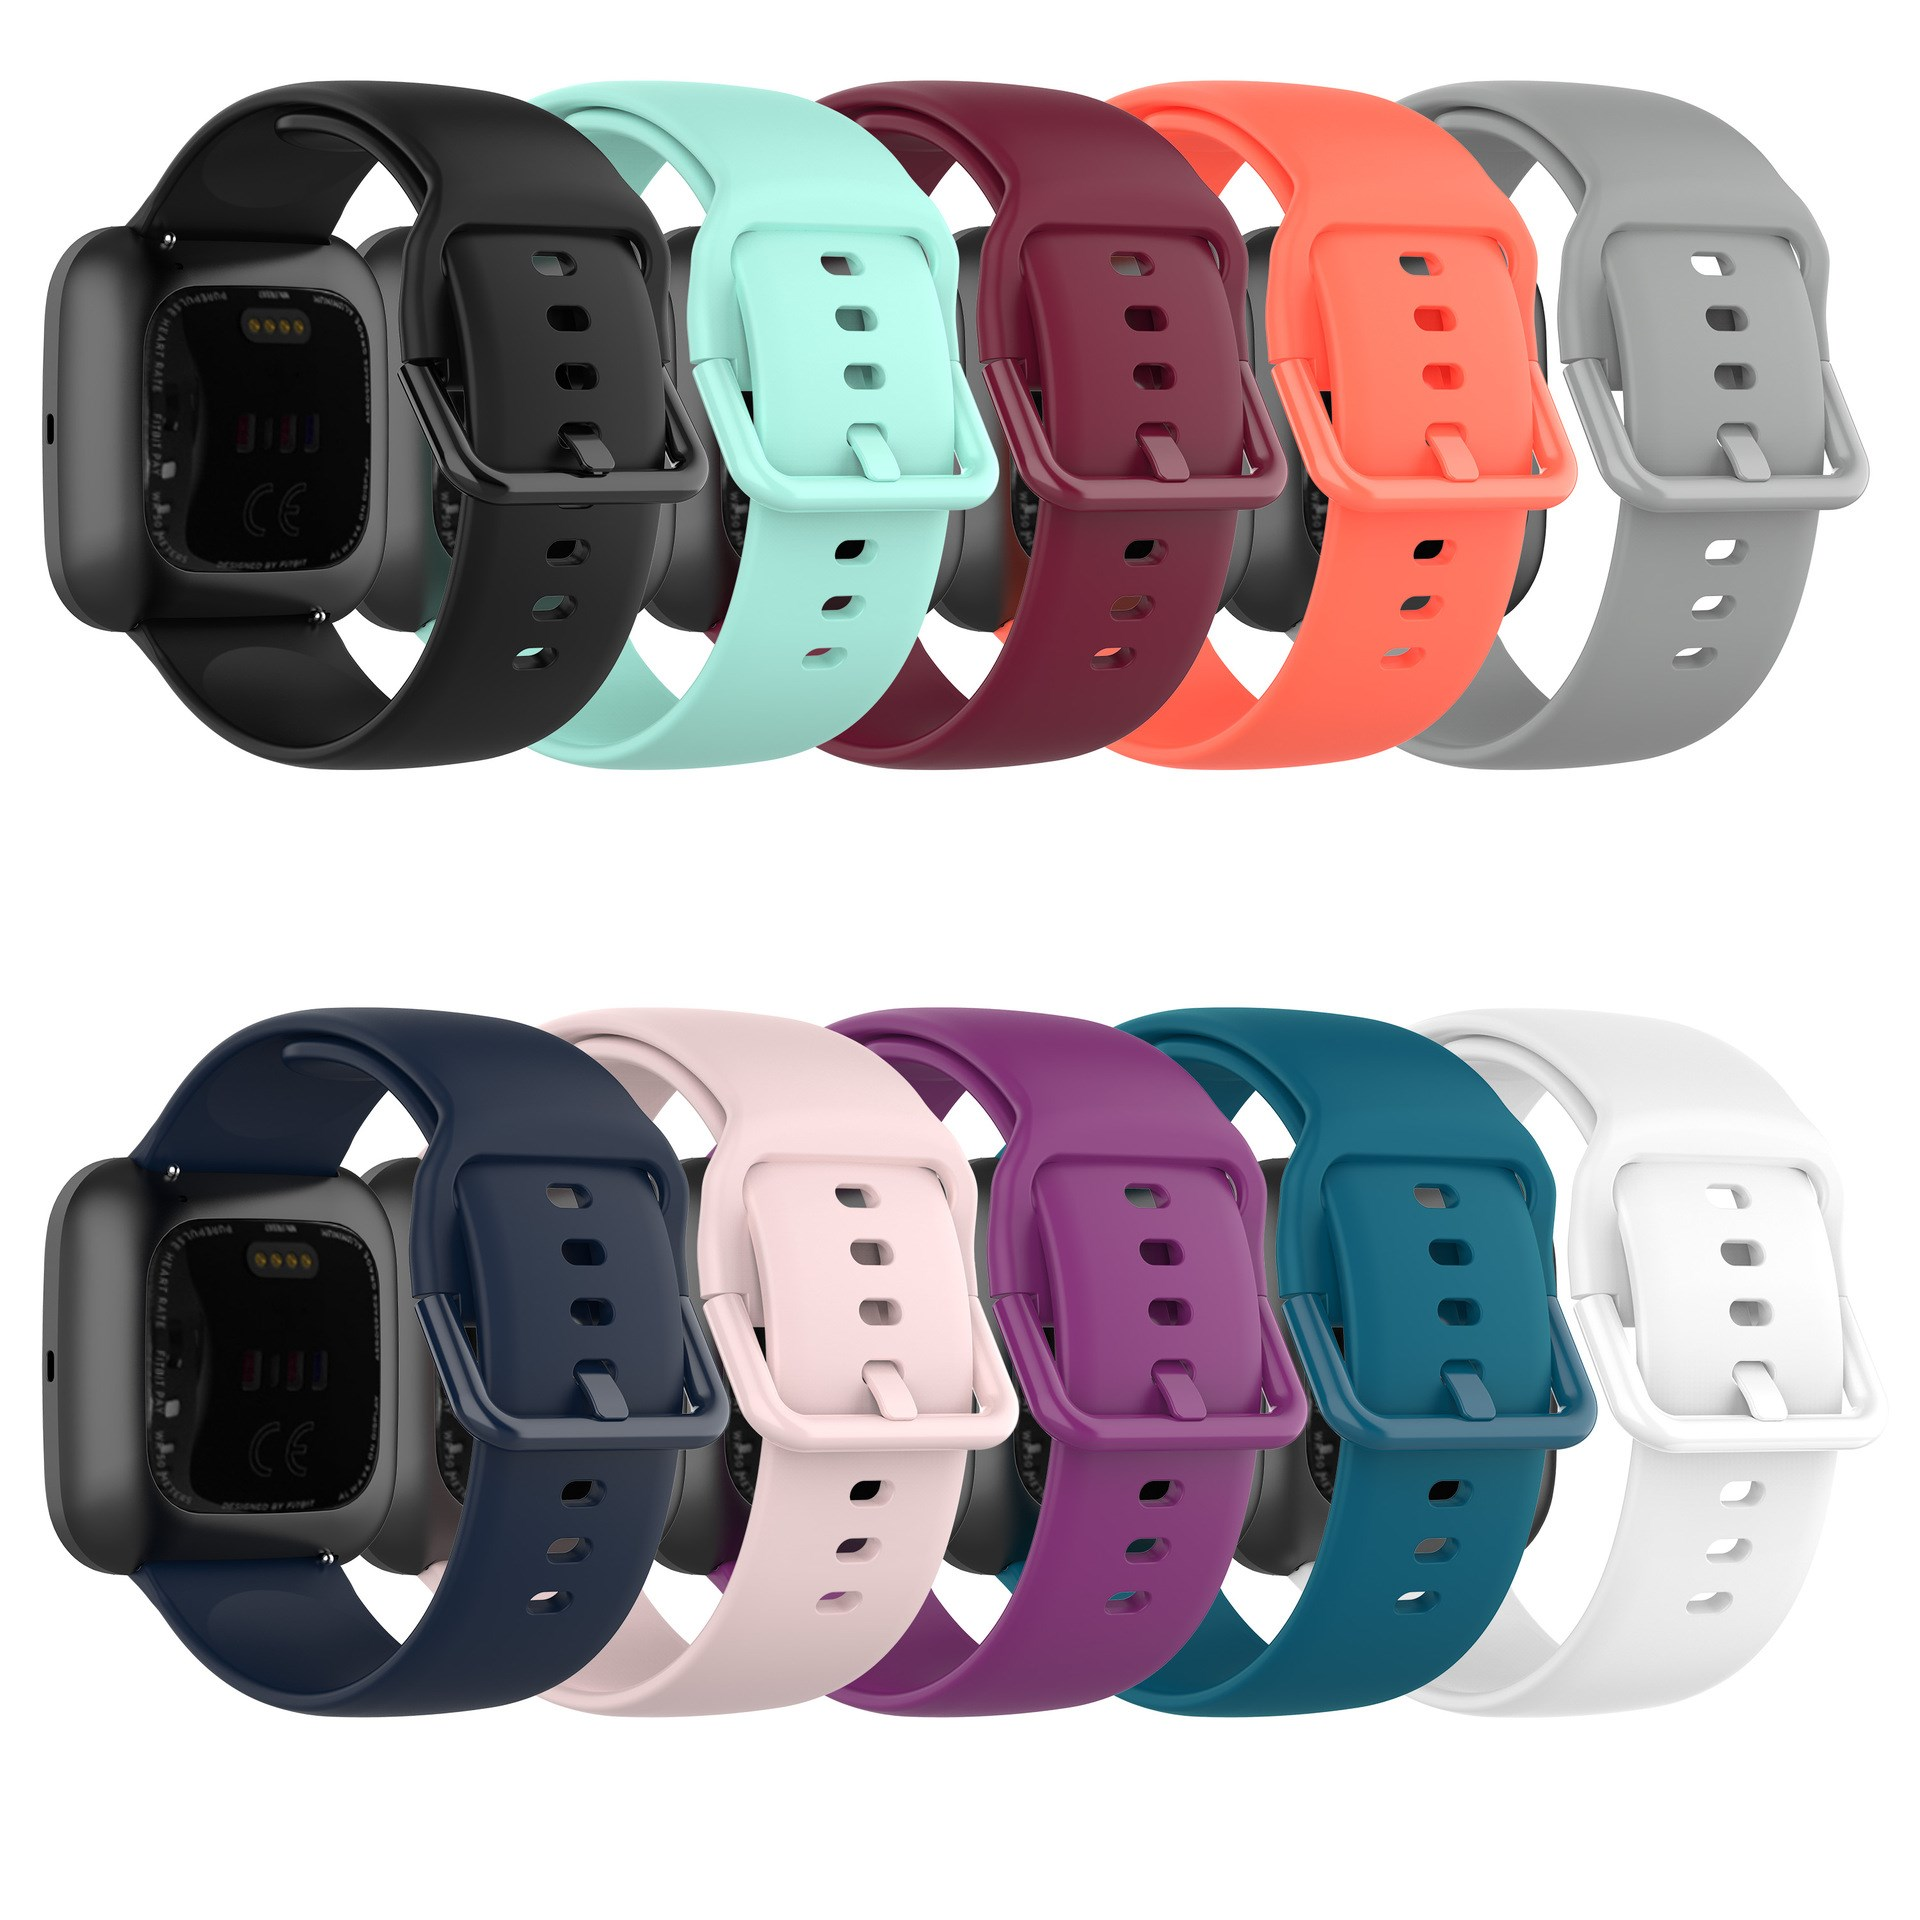 20mm 22mm Silicone Strap for Samsung Galaxy Watch 42m 46mm Watch 3 41mm 45mm Band Active 2 Gear S2 S3 Huawei Watch gt 2 Bracelet